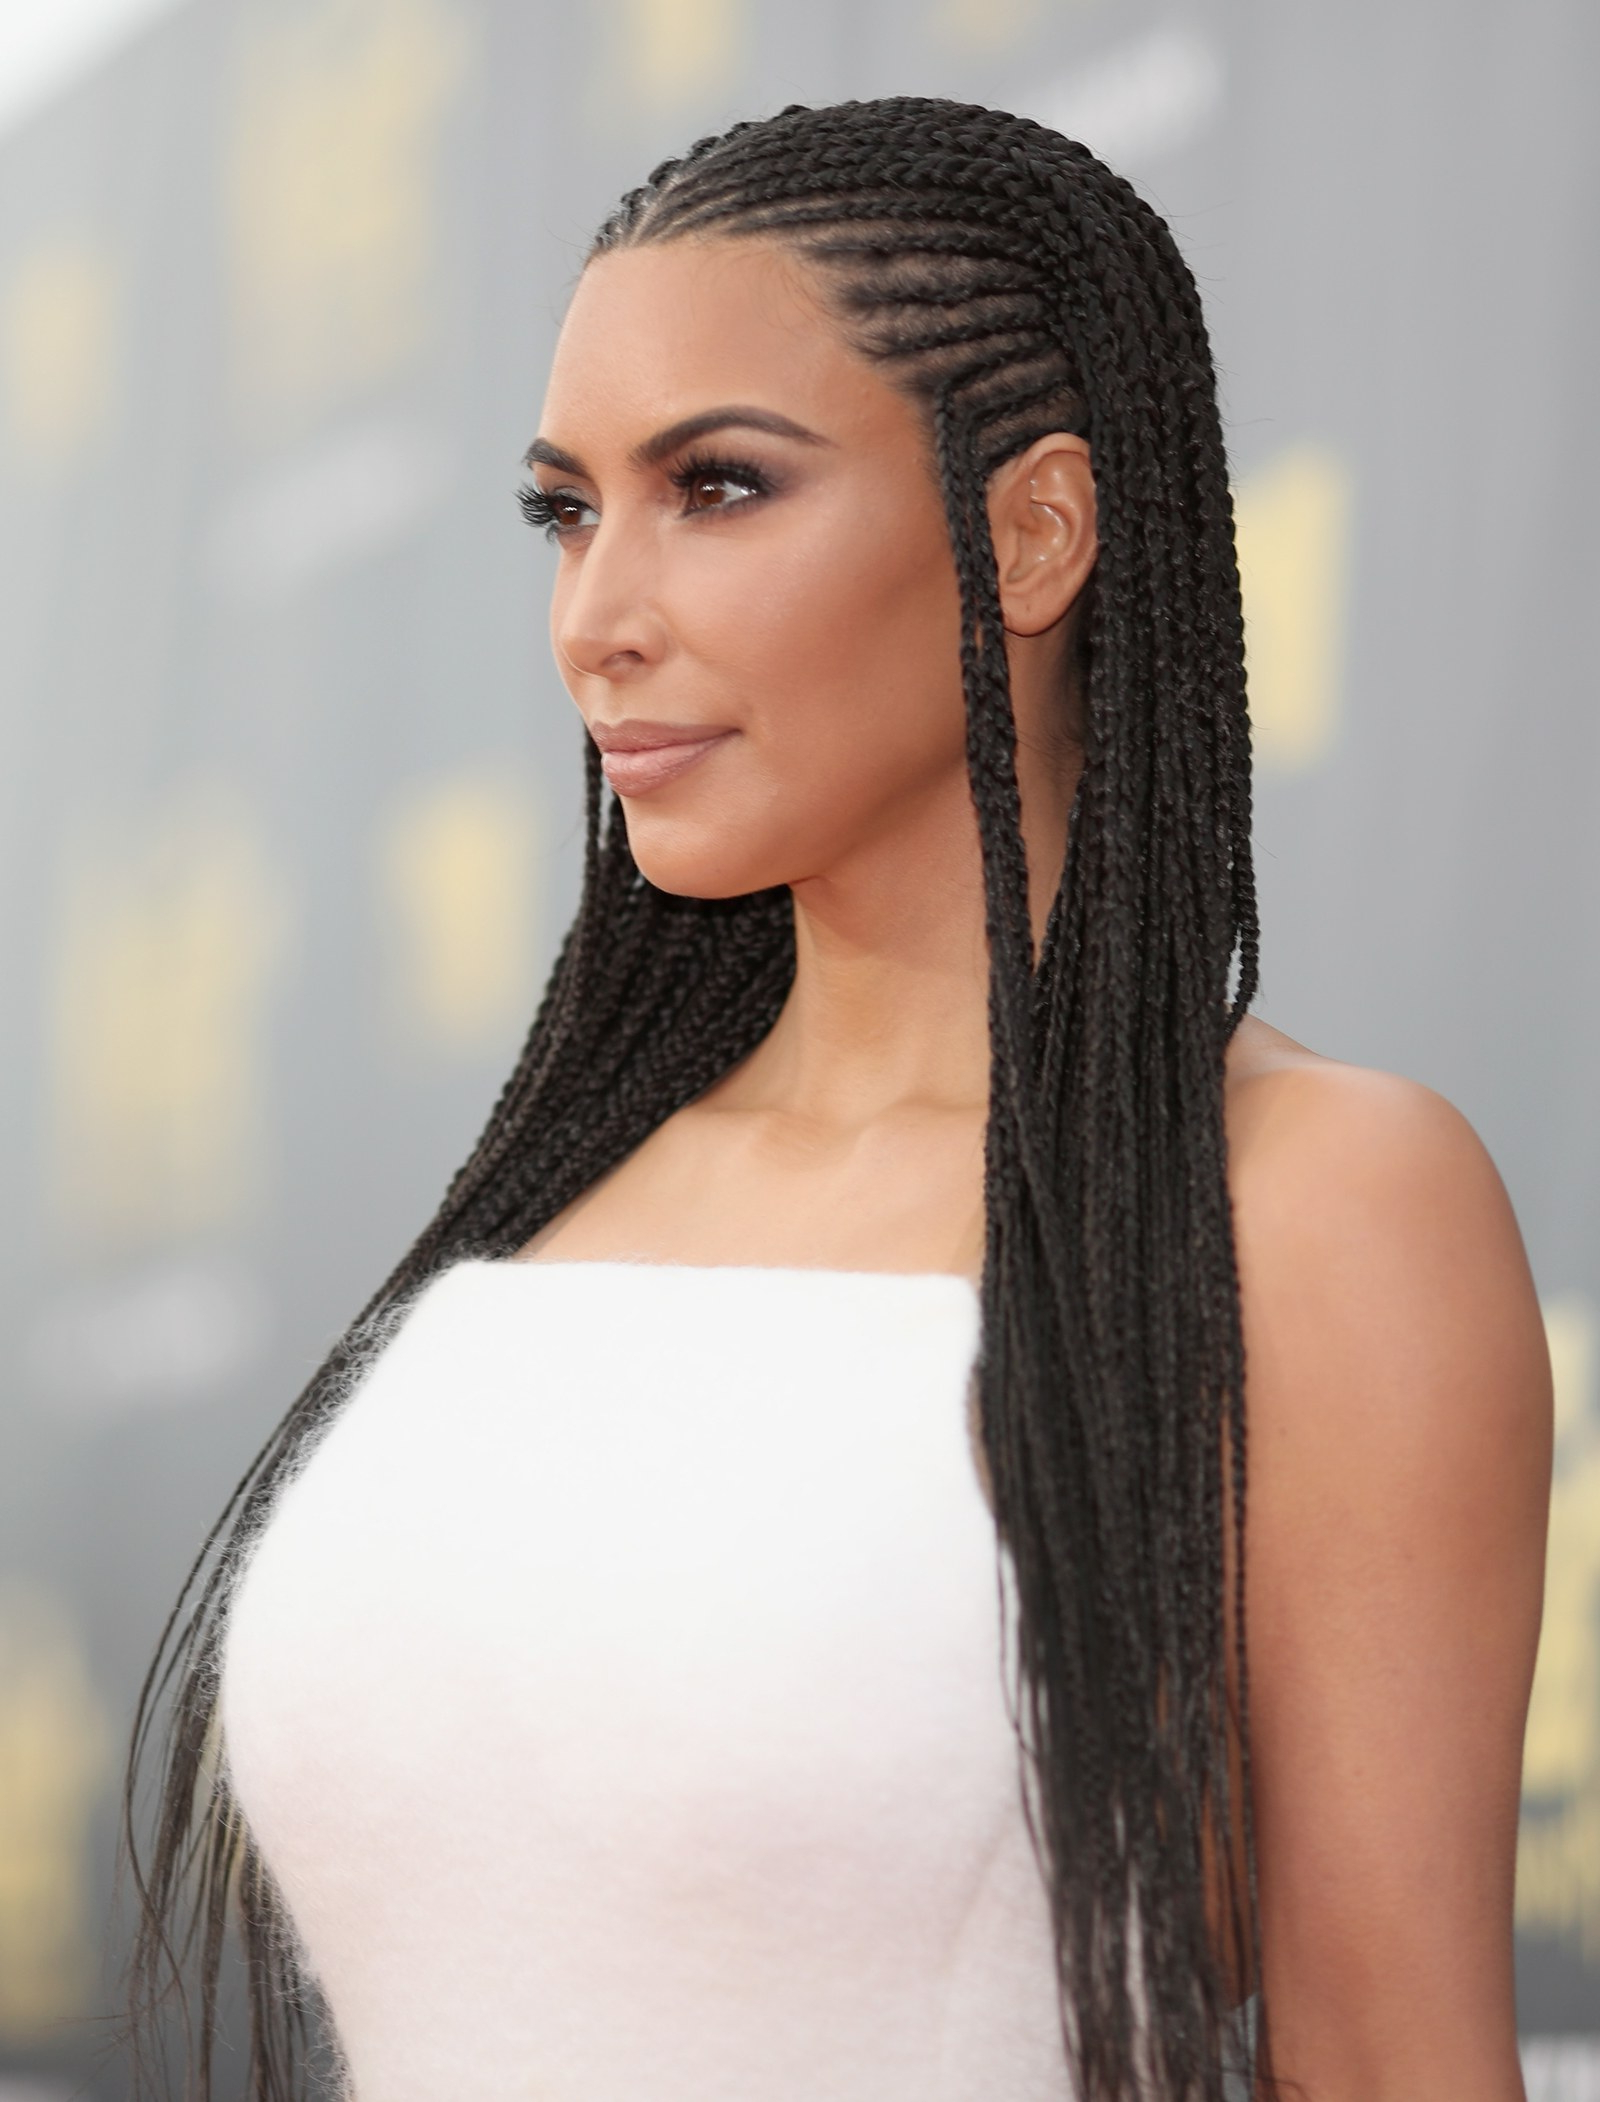 Kim Kardashian West Responds To The Backlash Over Her Braids Intended For Favorite Afro Under Braid Hairstyles (Gallery 19 of 20)